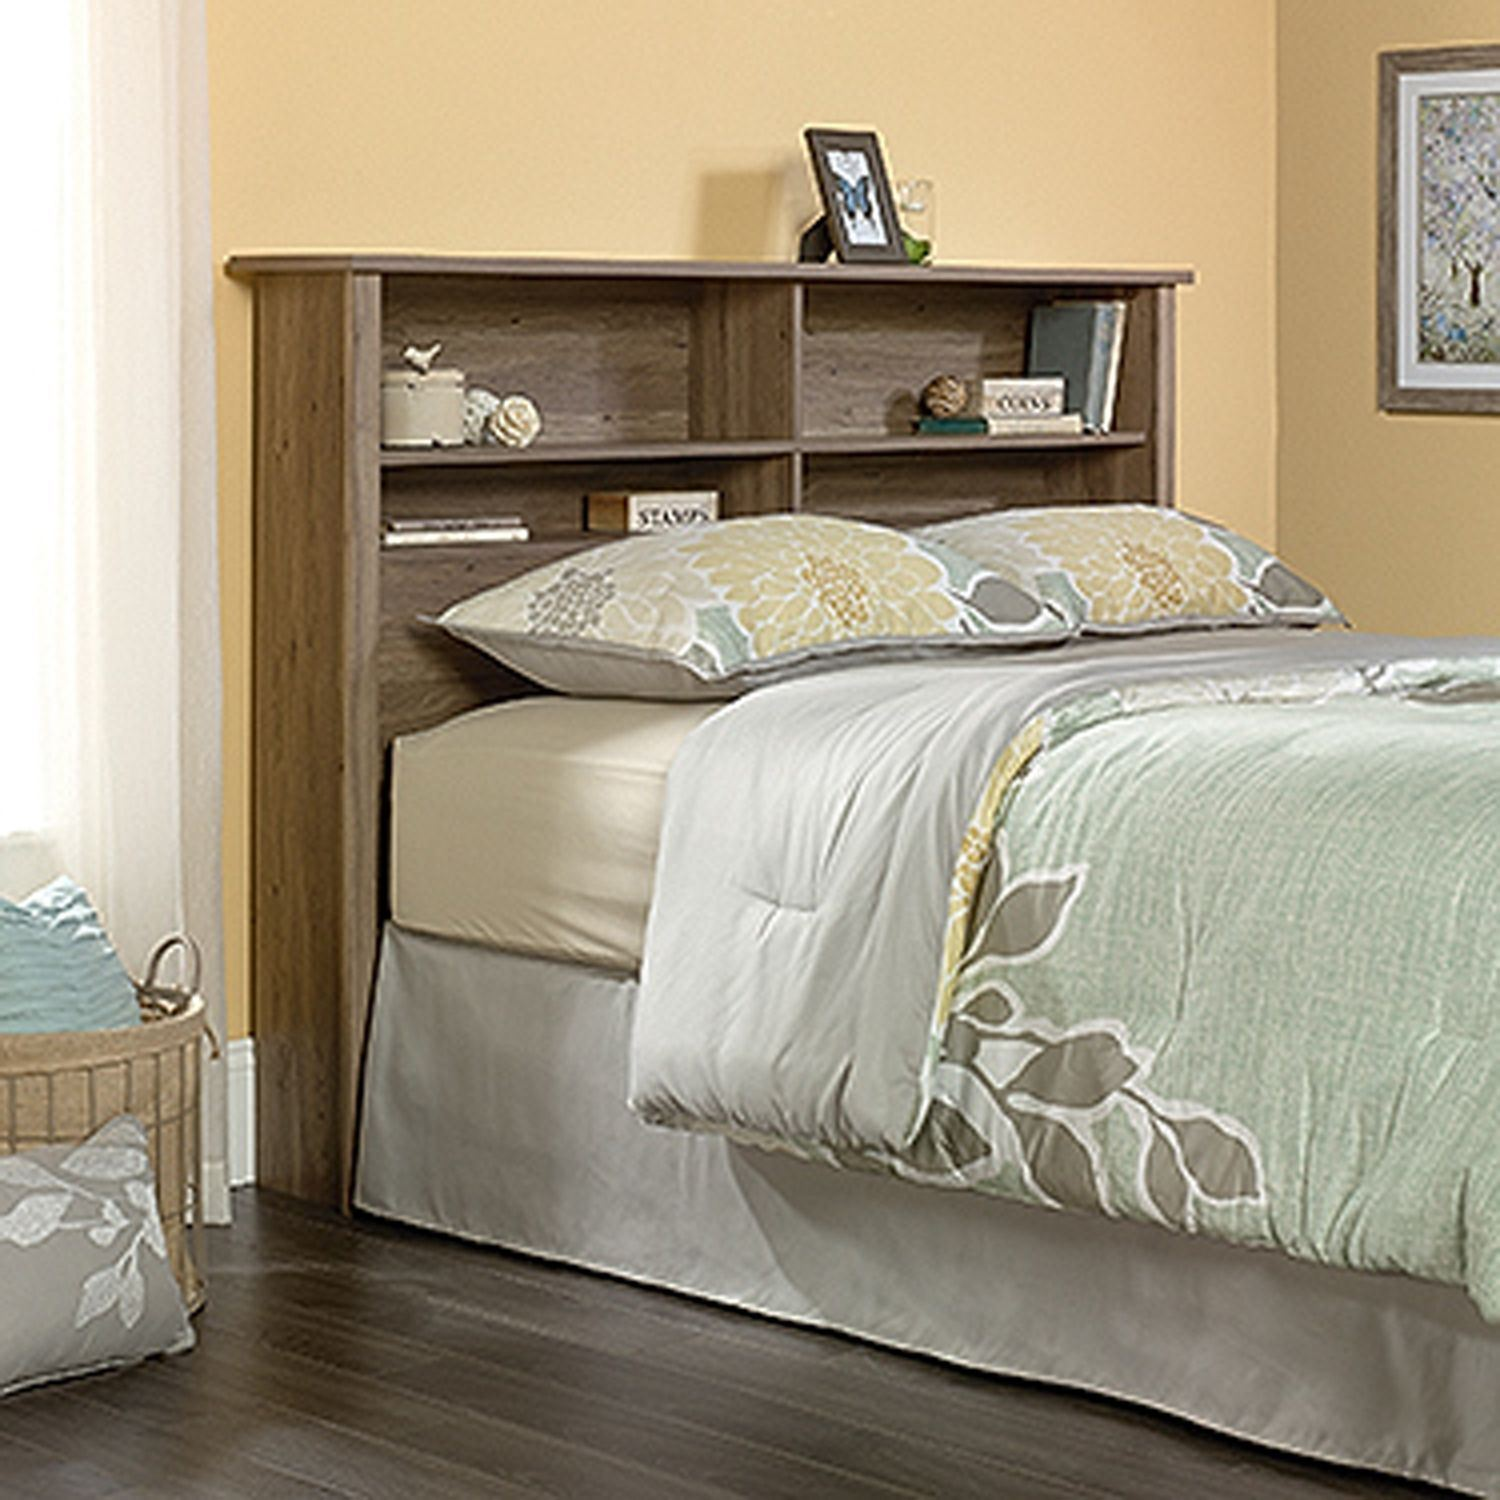 County Line Full Queen Bookcase Headboard Salt Oak